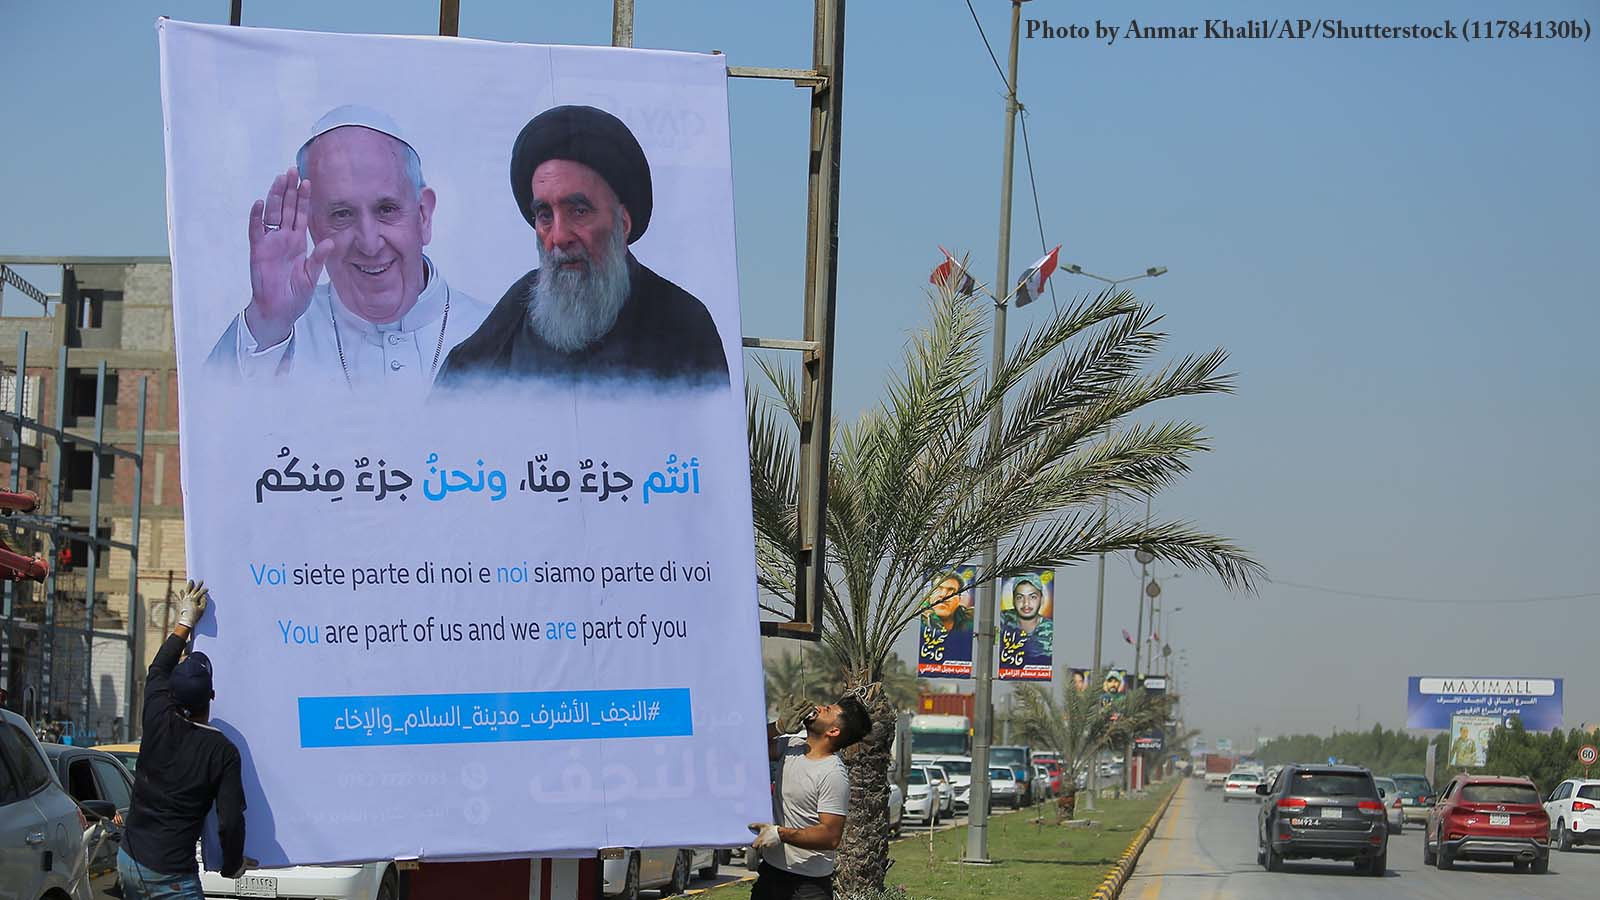 Poster of Pope Francis and Ayatollah Al-Sistani on an Iraqi street. Photo by Anmar Khalil/AP/Shutterstock